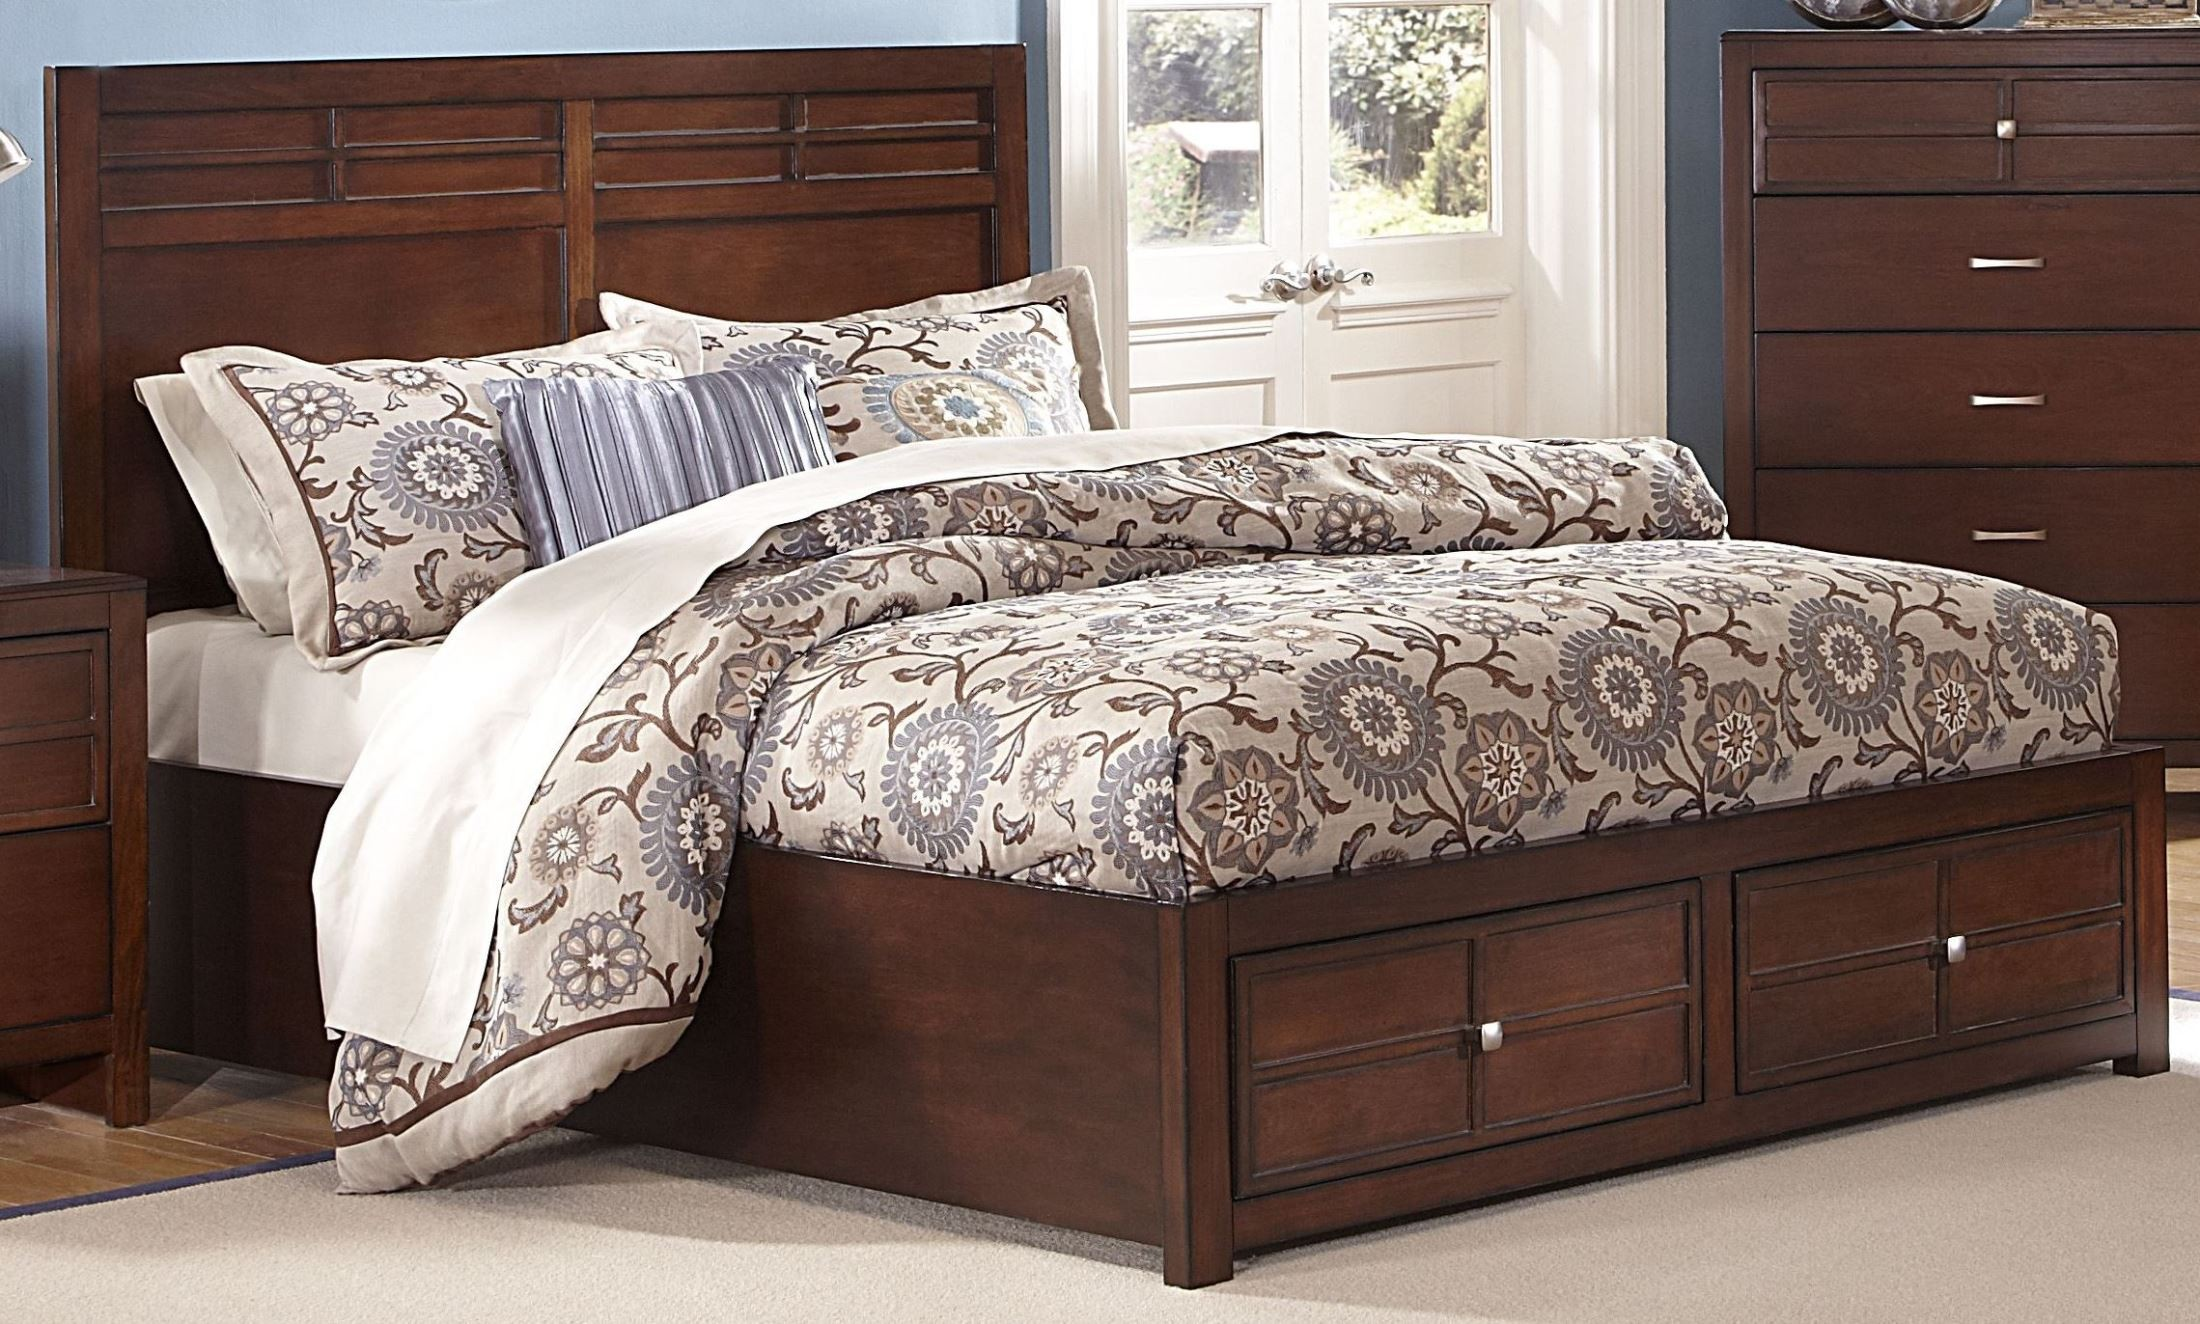 kensington burnished cherry cal king platform storage bed from new classics 00 060 210 228 230. Black Bedroom Furniture Sets. Home Design Ideas